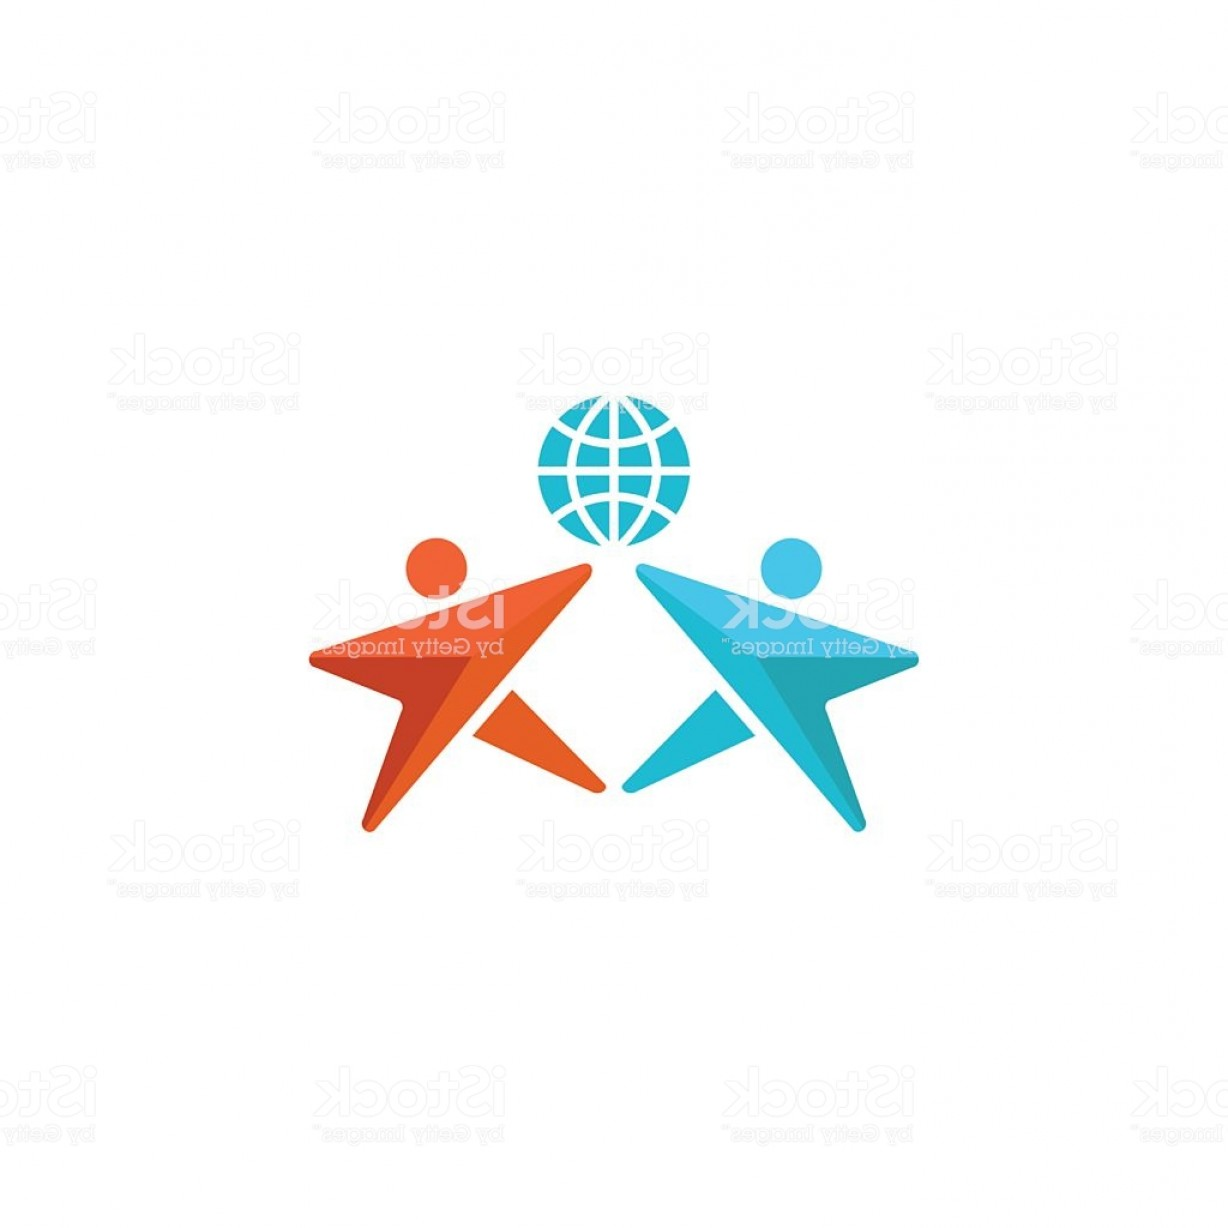 Friendship Symbol Vector: Two Man Logo Globe People Hands Up Together Friendship Symbol Gm